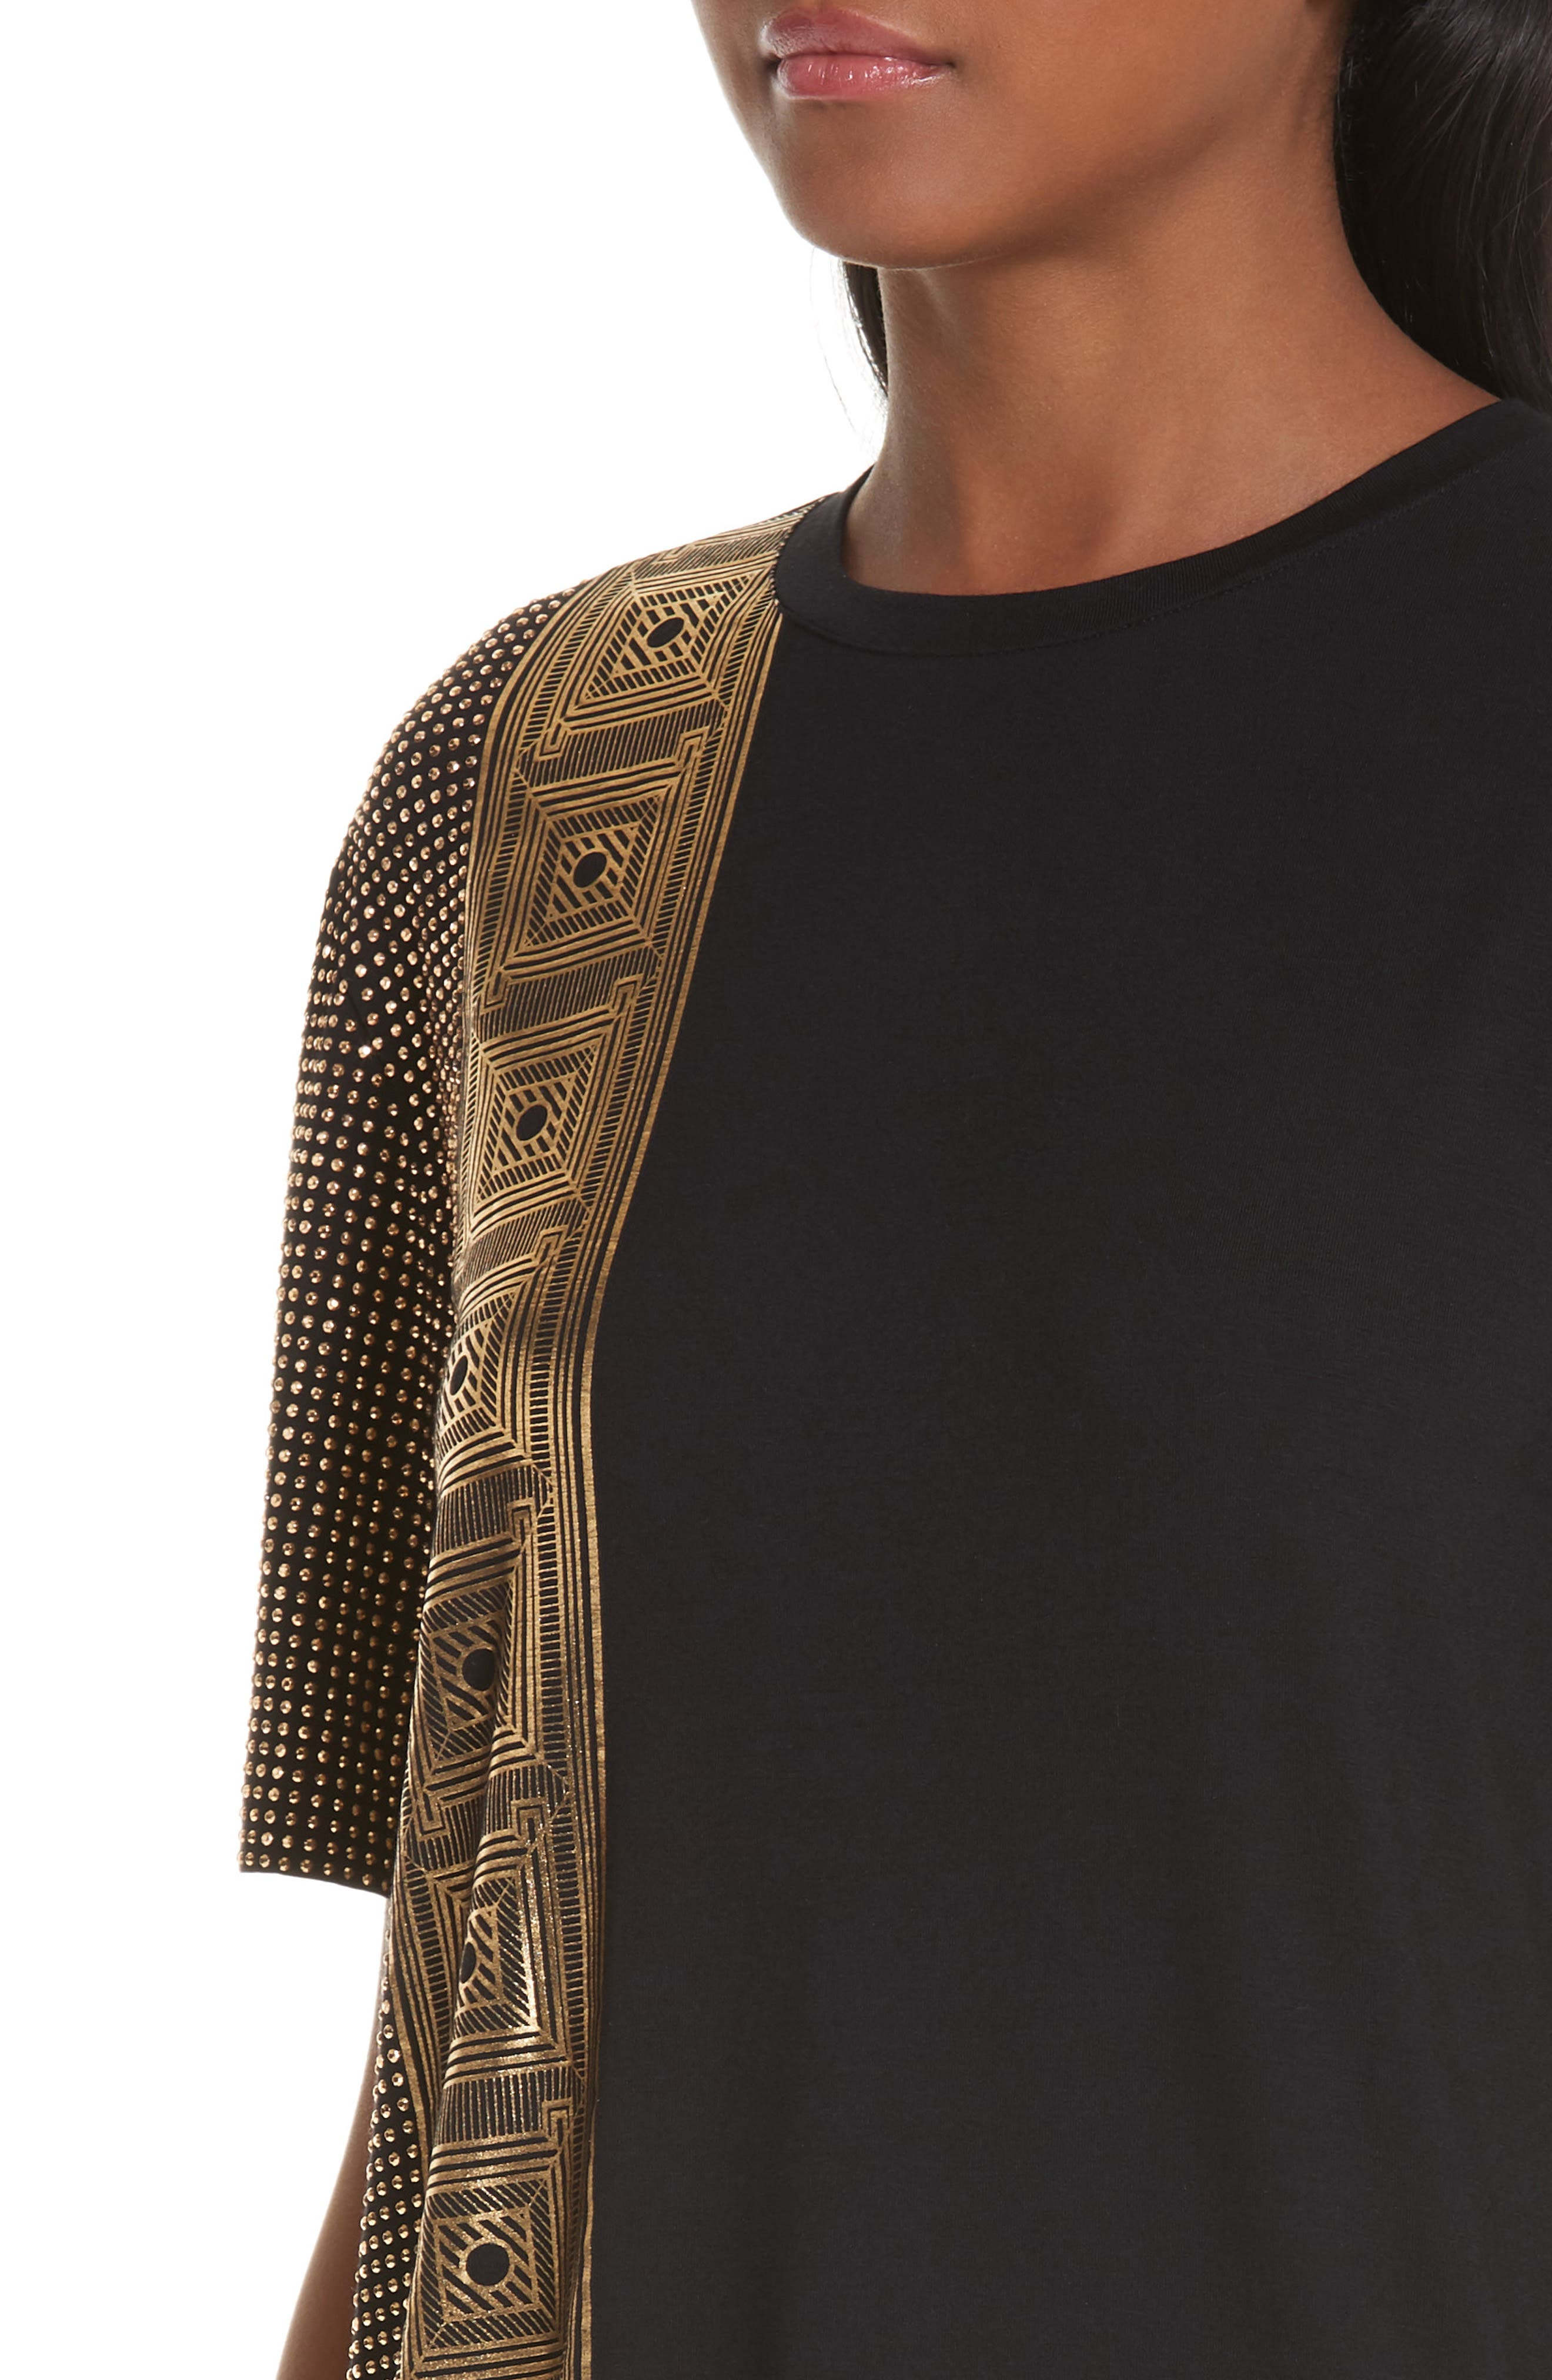 VERSACE COLLECTION, Embellished Tee, Alternate thumbnail 4, color, BLACK